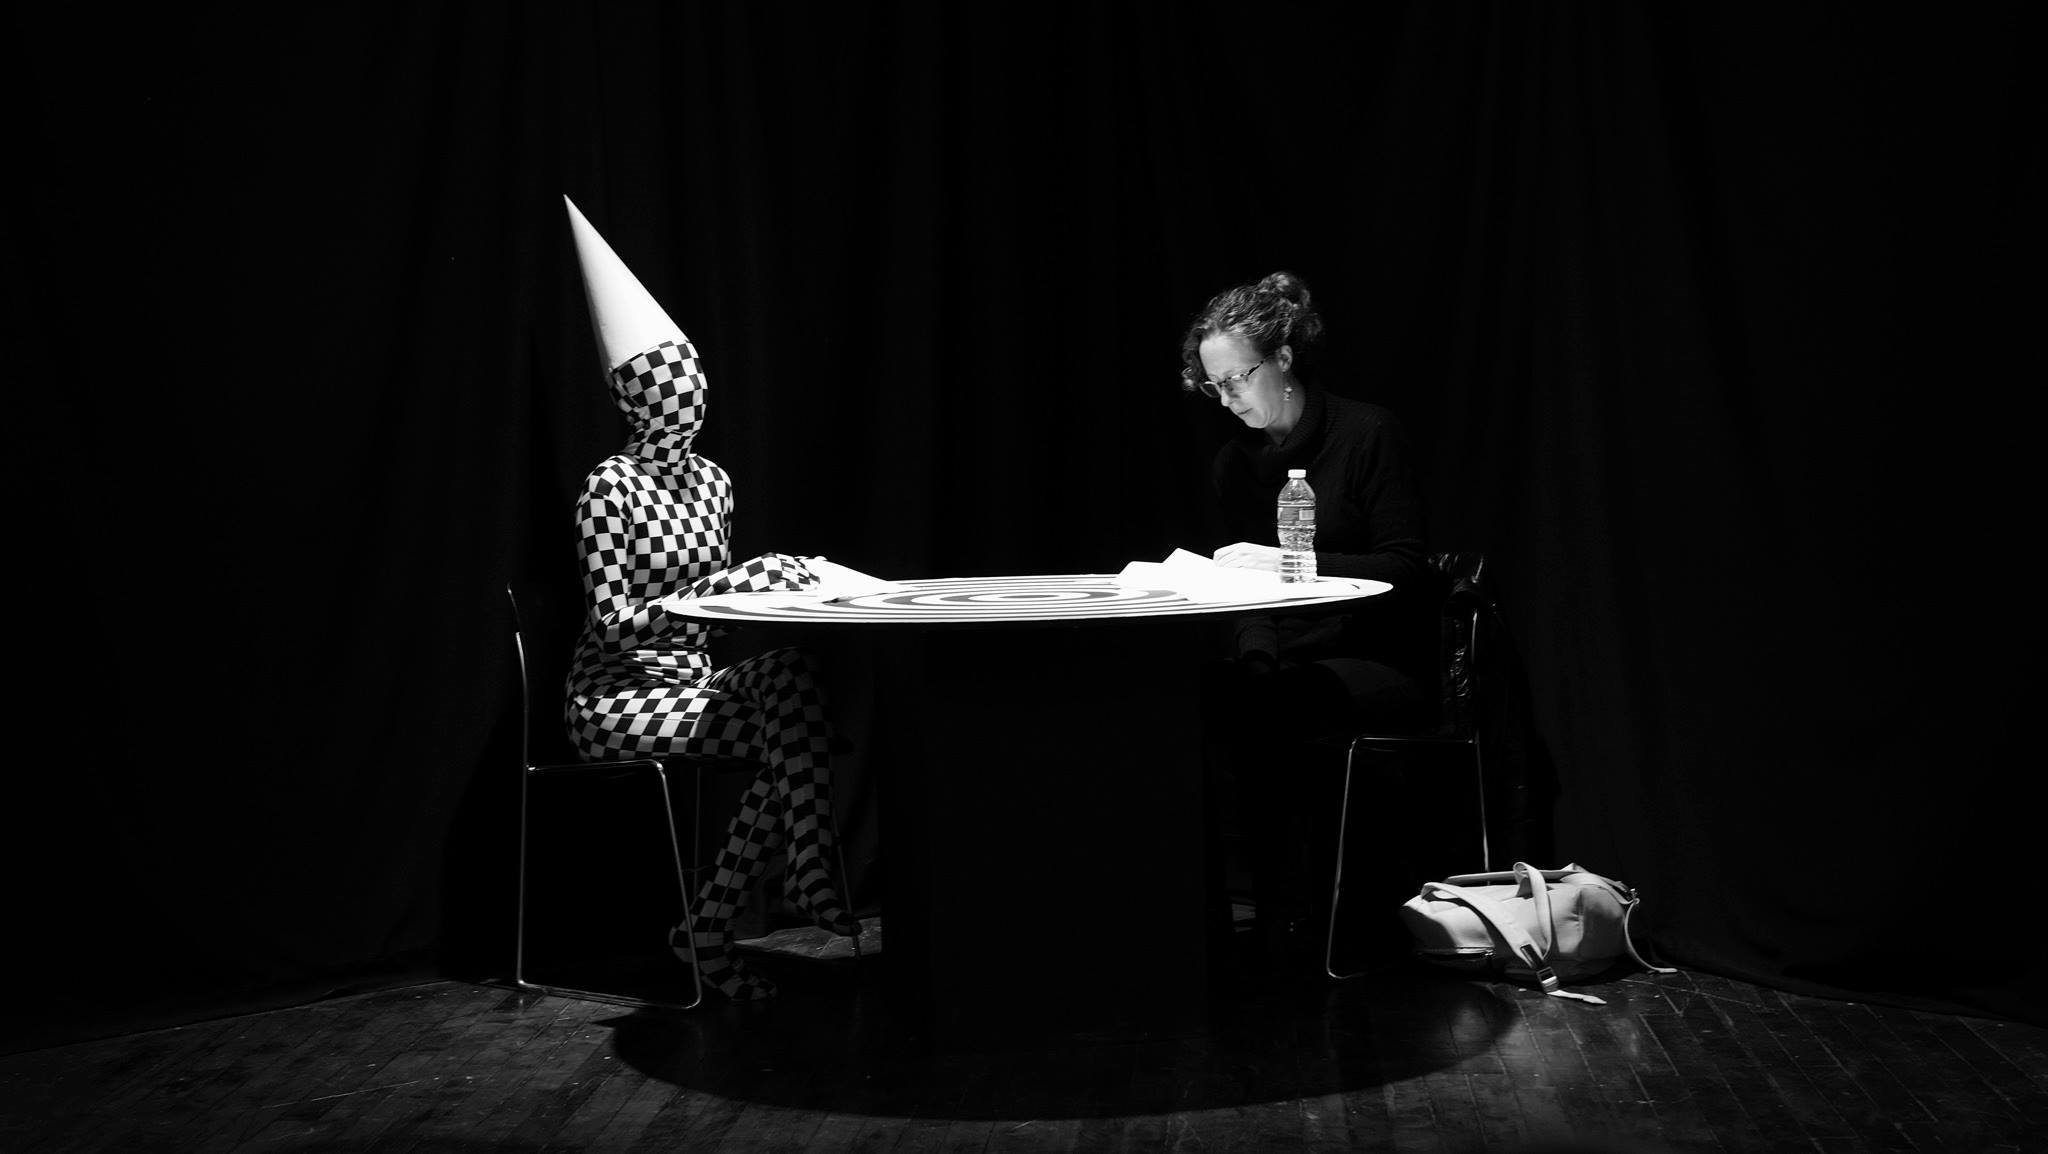 DUNCES OF THE ROUND TABLE: PADDY JOHNSON VERSION